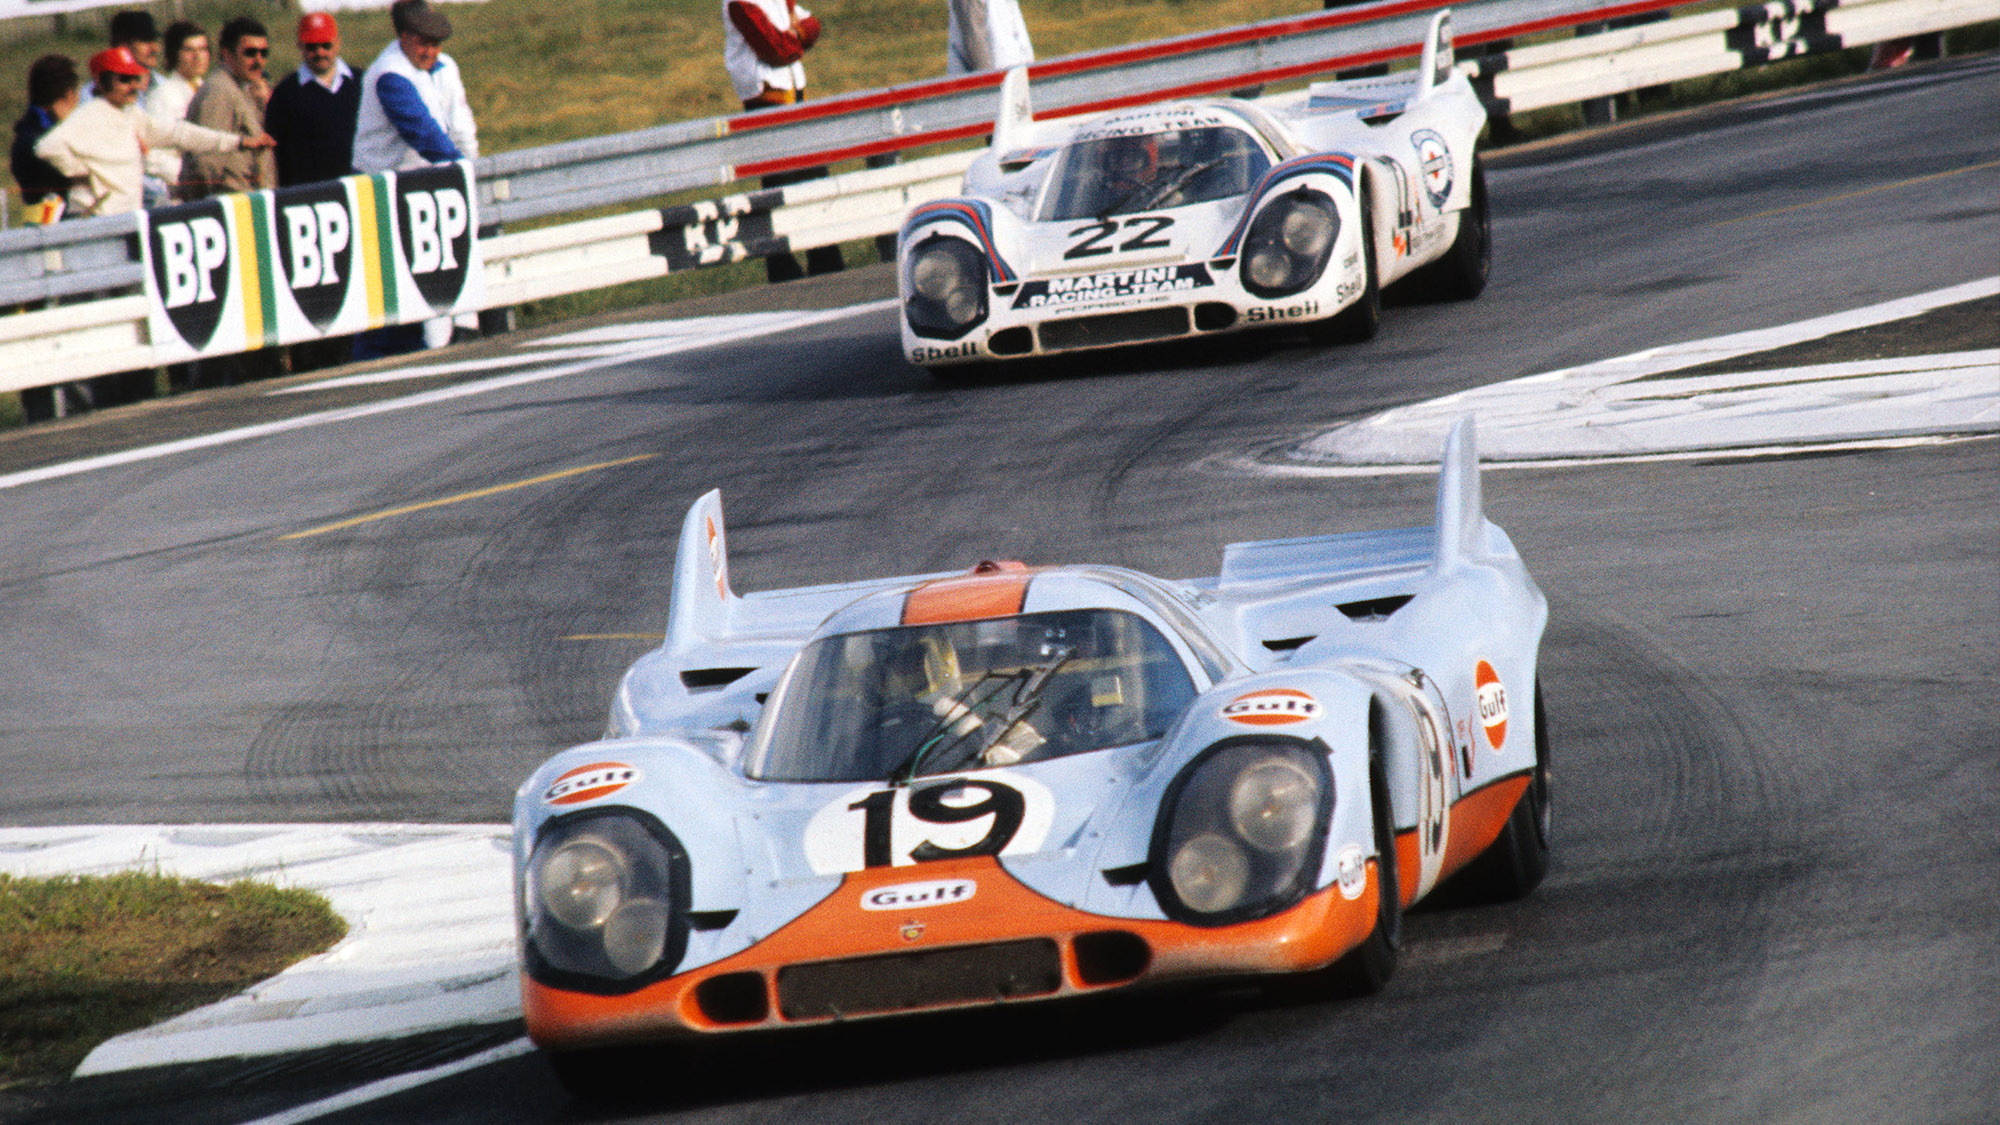 Gulf and Martini Porsche 917s at the 1971 Le Mans 24 Hours